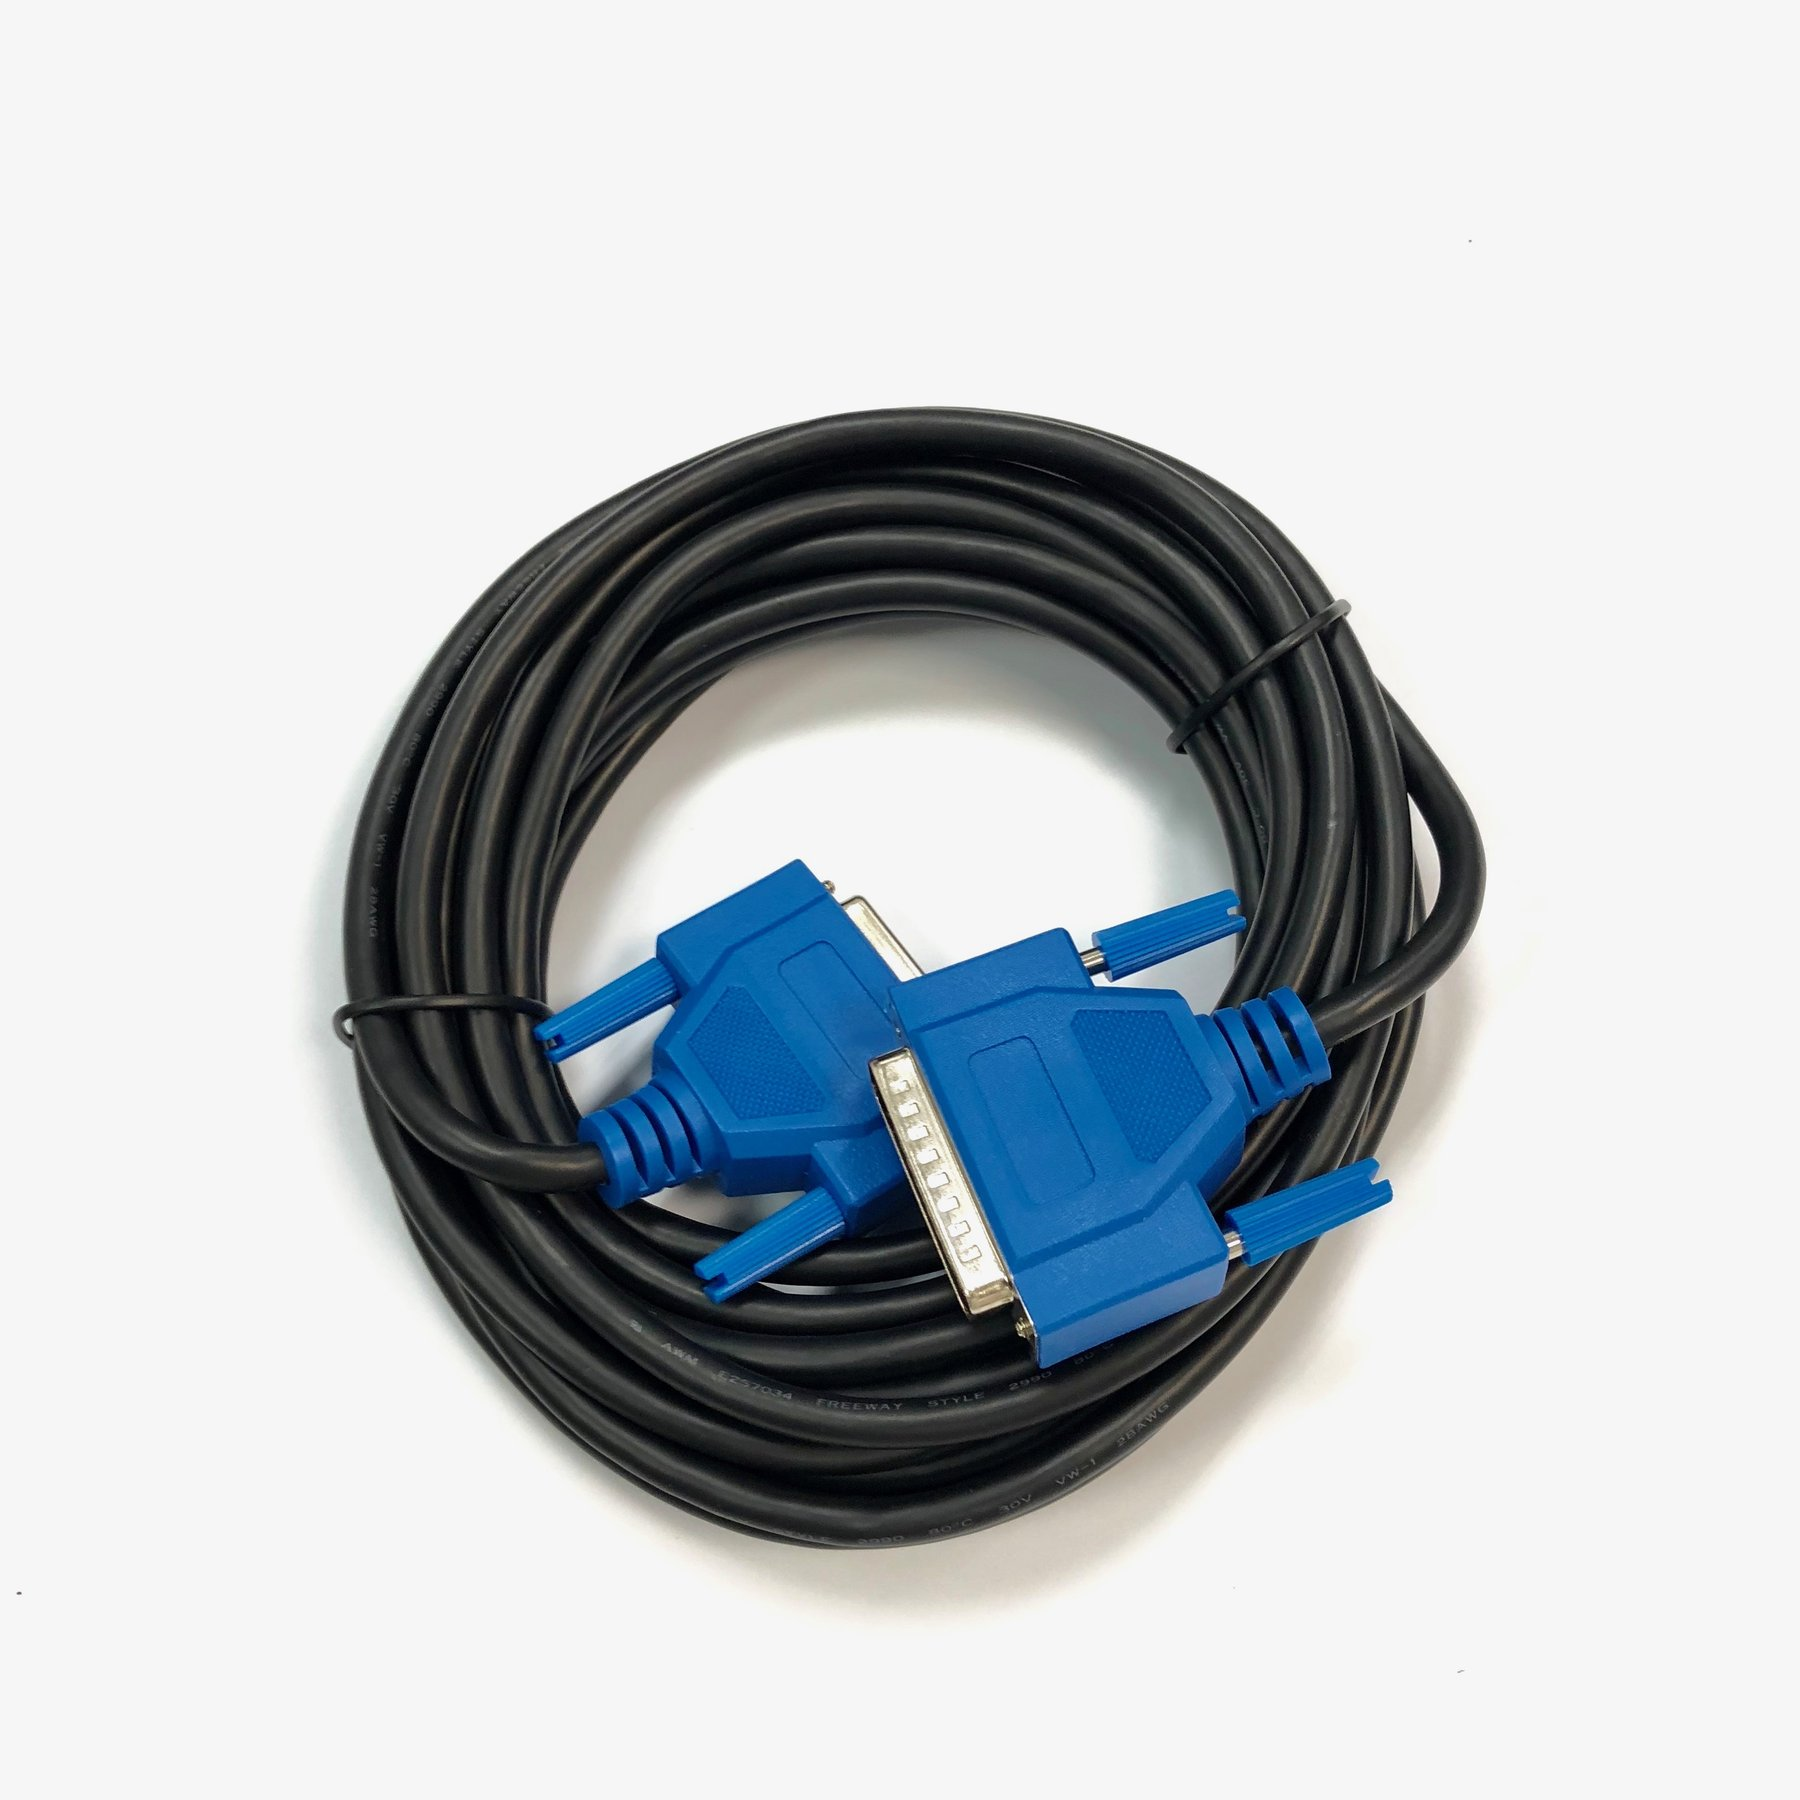 Version 4 Controller Cable